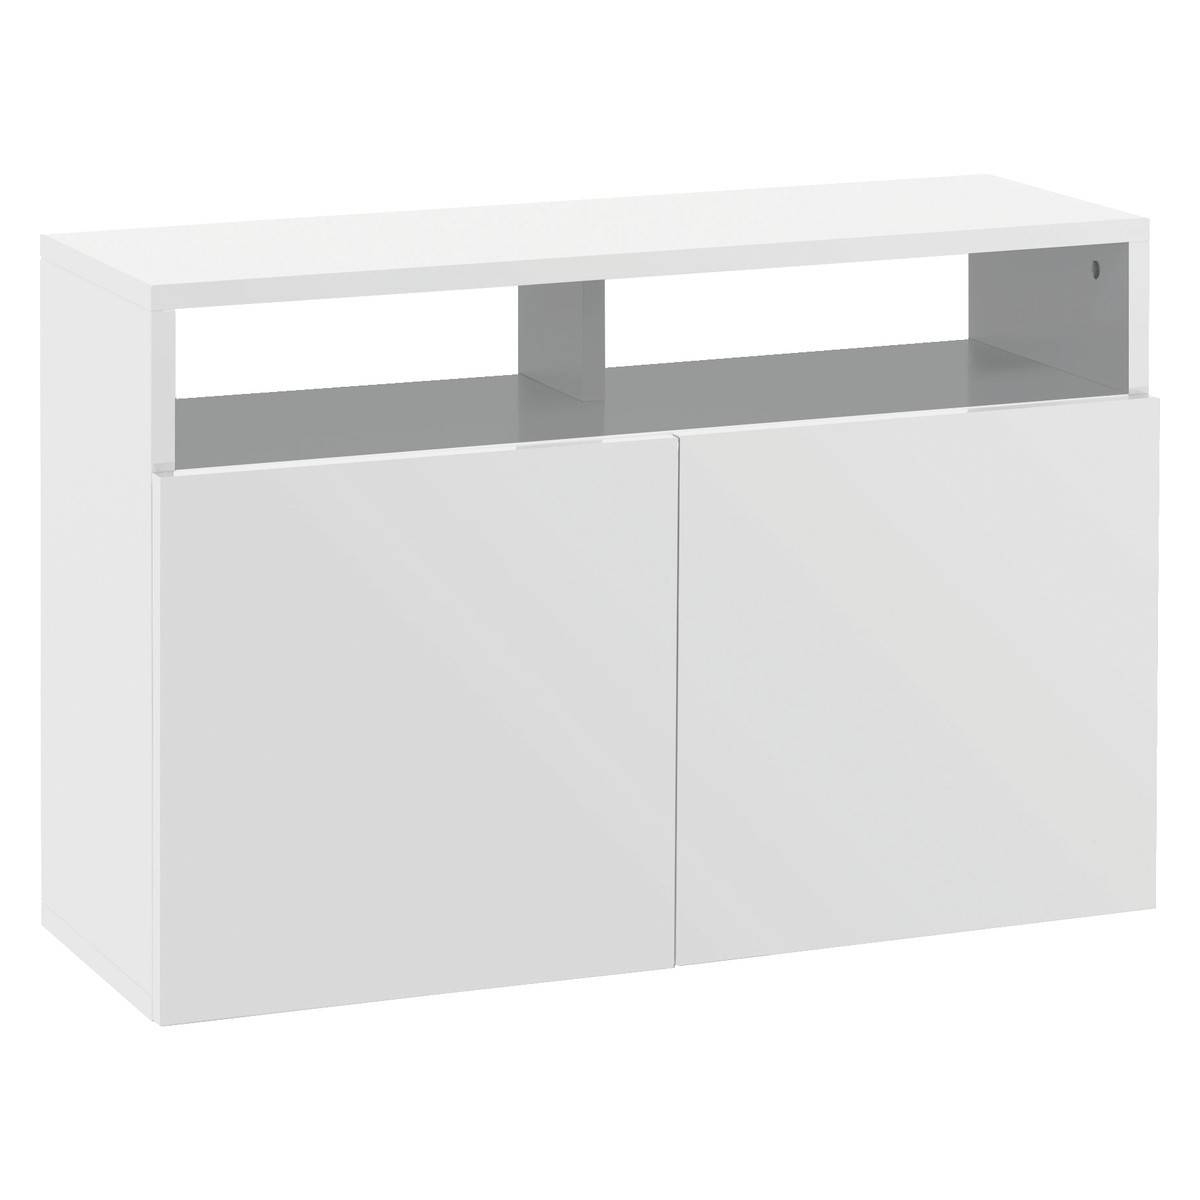 Kubrik White High Gloss Small Sideboard | Buy Now At Habitat Uk In Small Sideboards (#7 of 20)